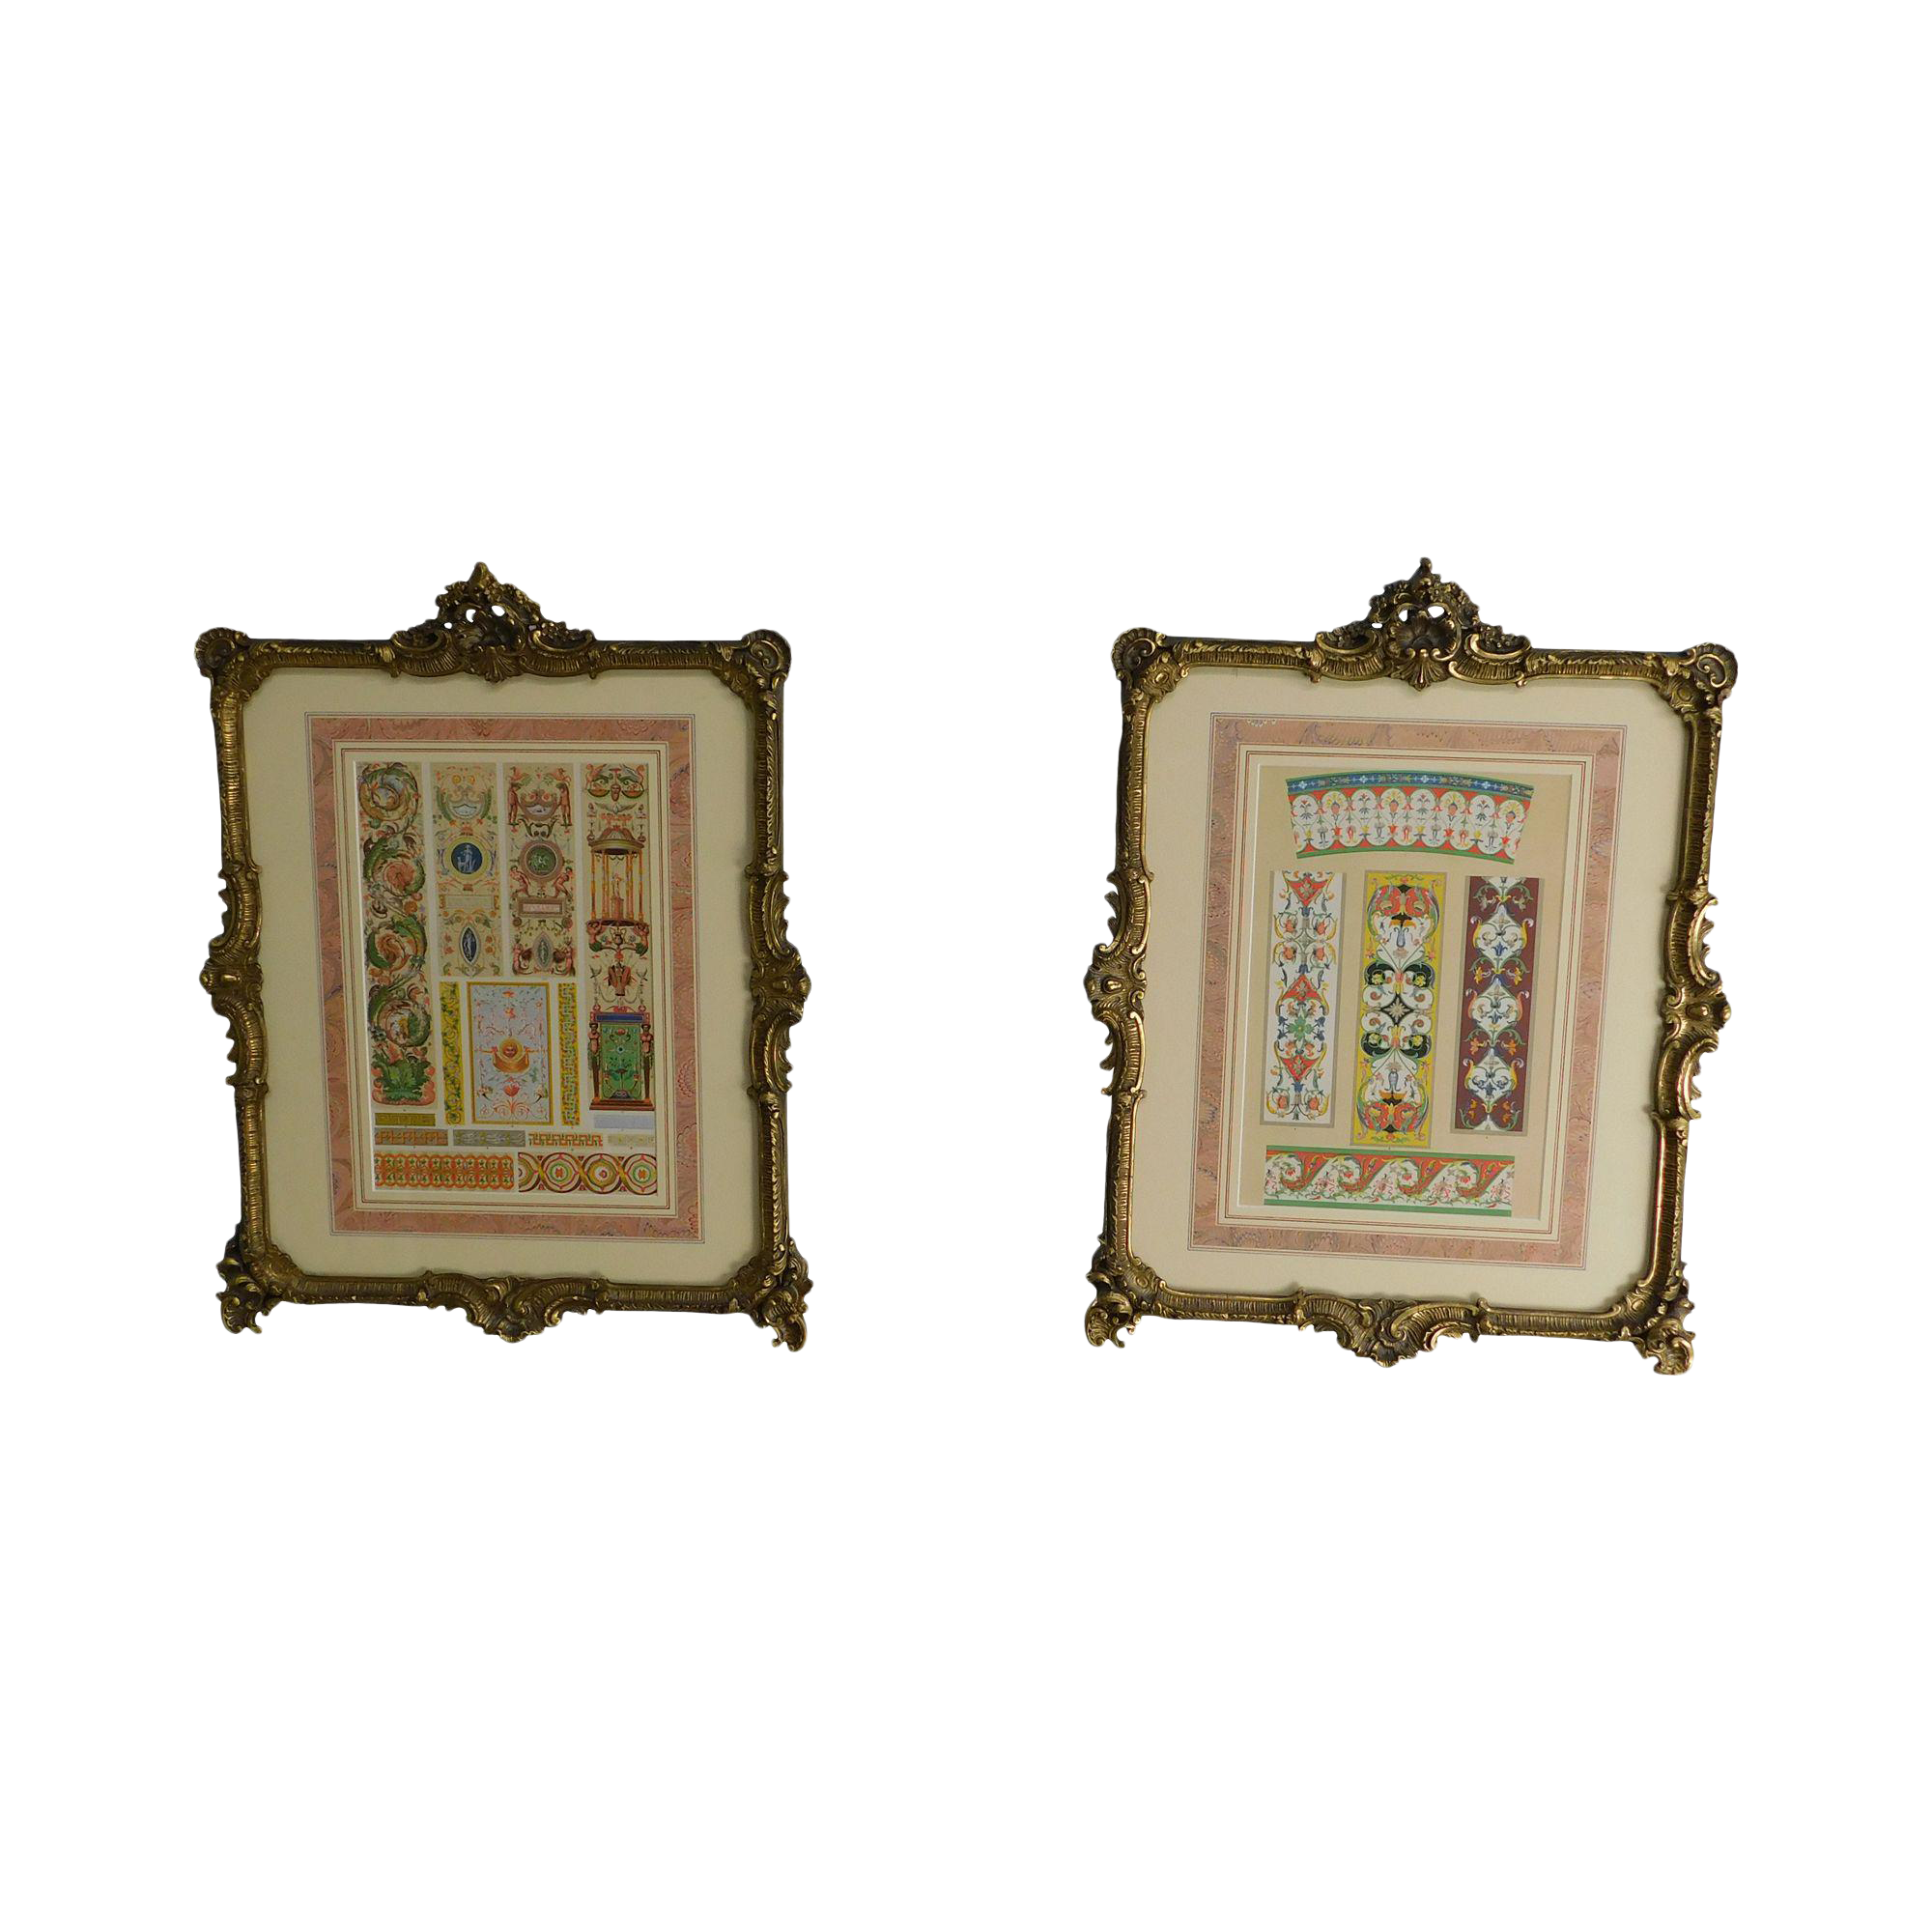 Rococo Gilt Framed Pair of Prints Showing Samples of Decorative 2000x2000